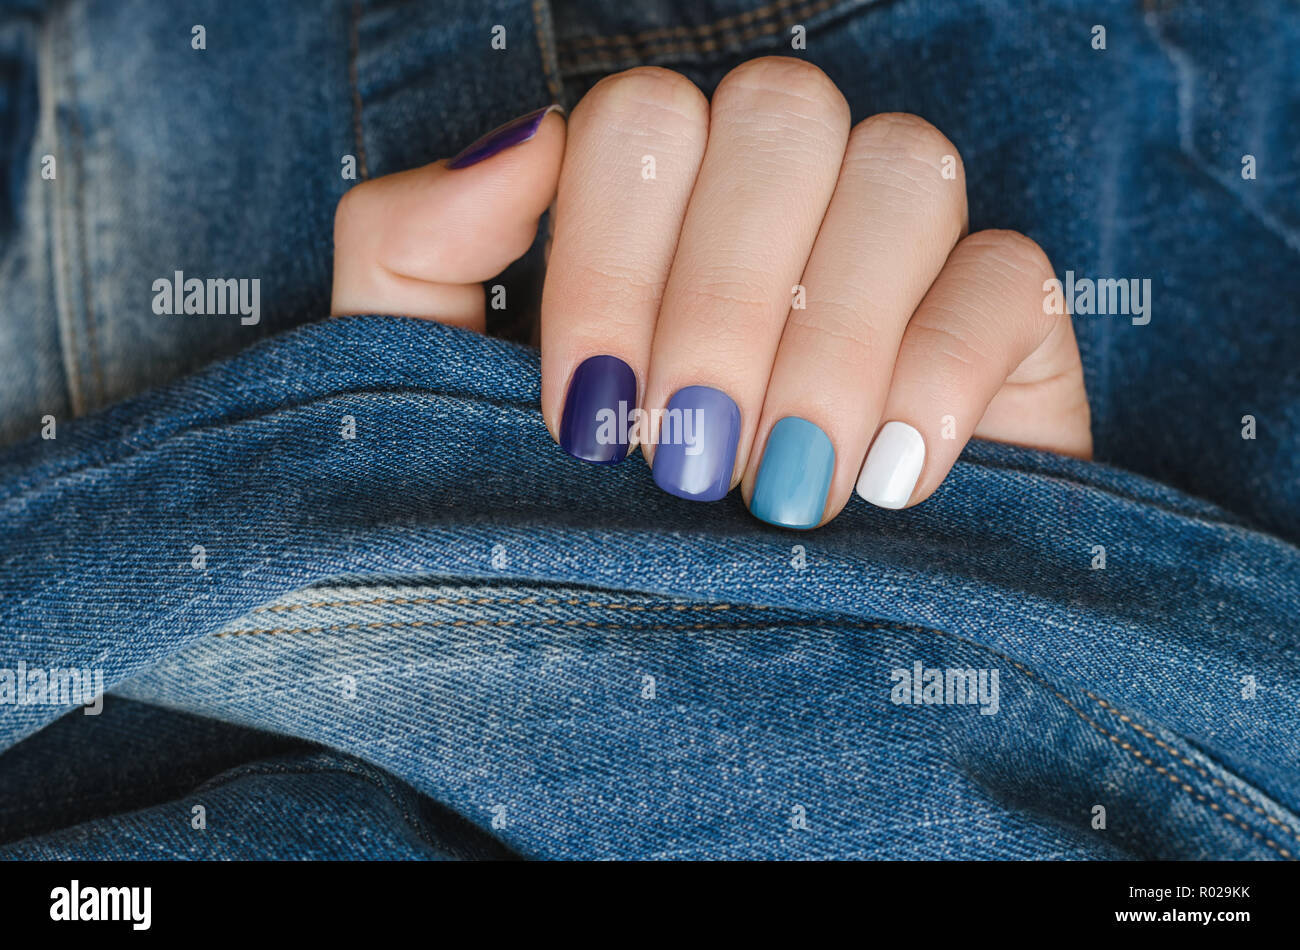 Blue Nail Design Beautiful Female Hand With Different Shades Of Blue Manicure Stock Photo Alamy